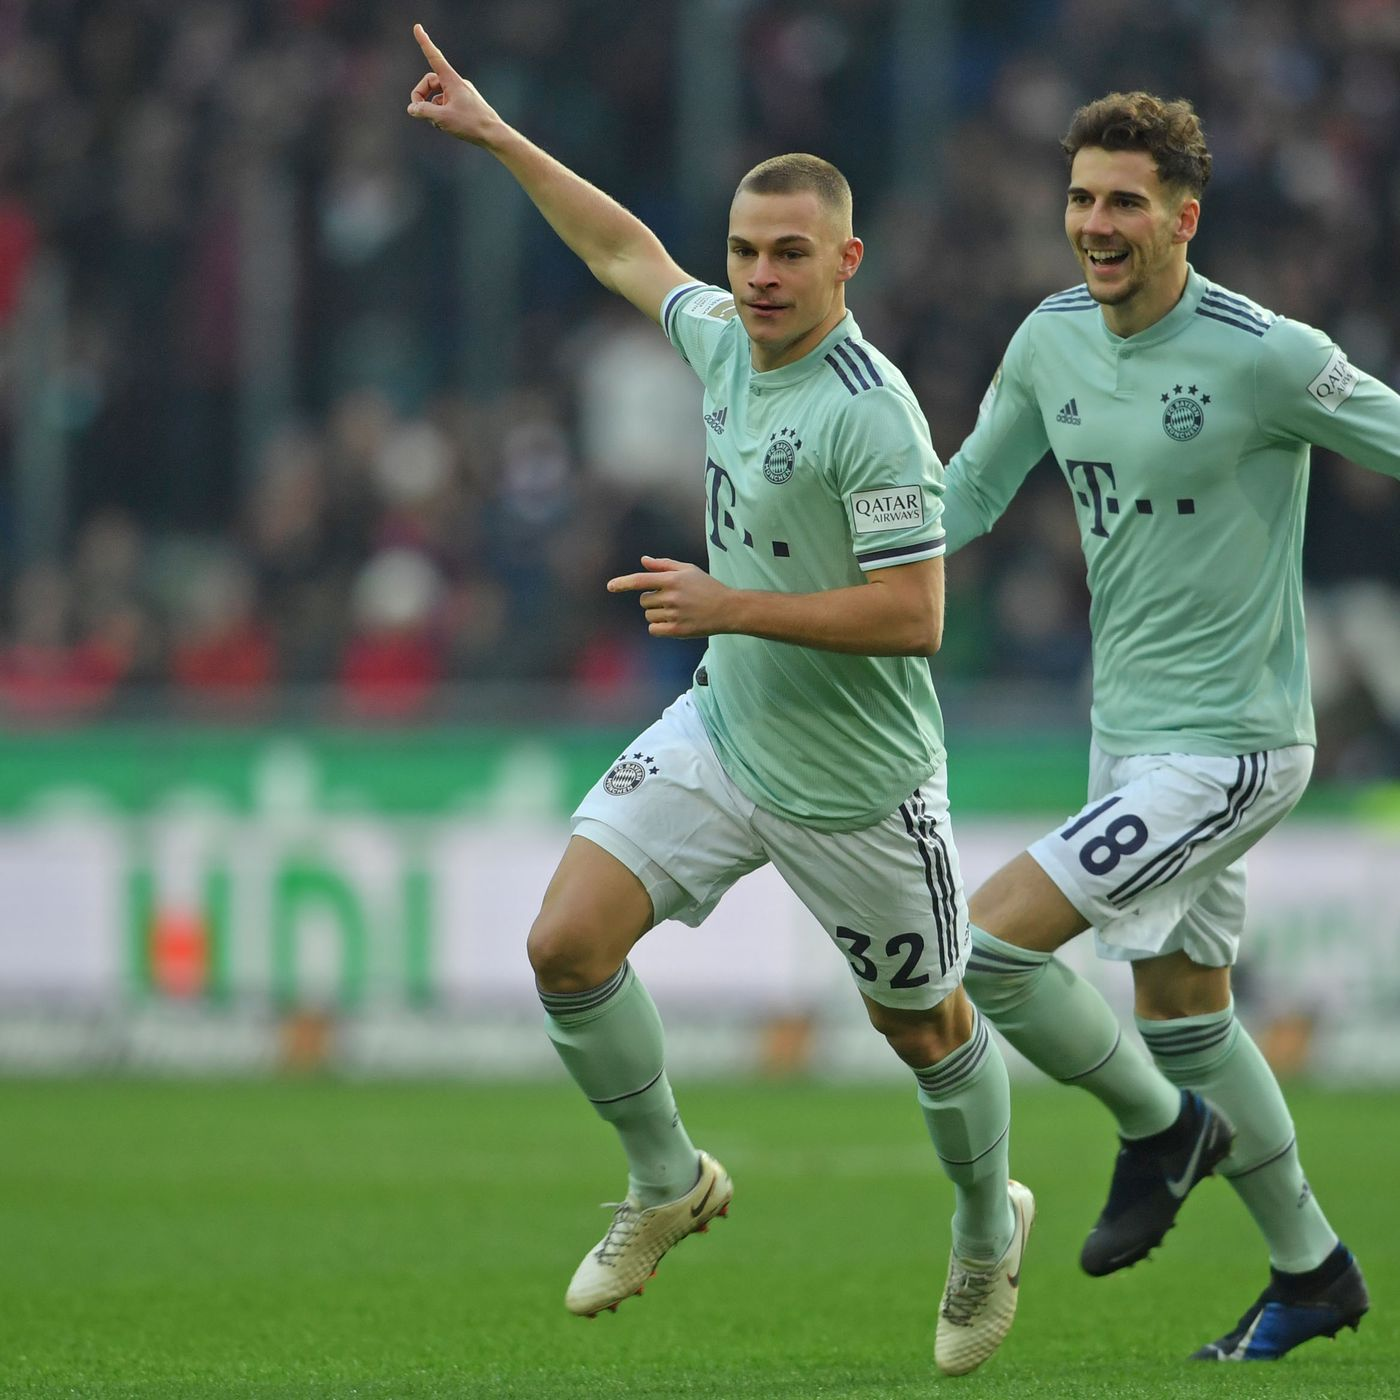 Five Observations From Bayern Munich S Comfortable 4 0 Win Over Hannover 96 Bavarian Football Works